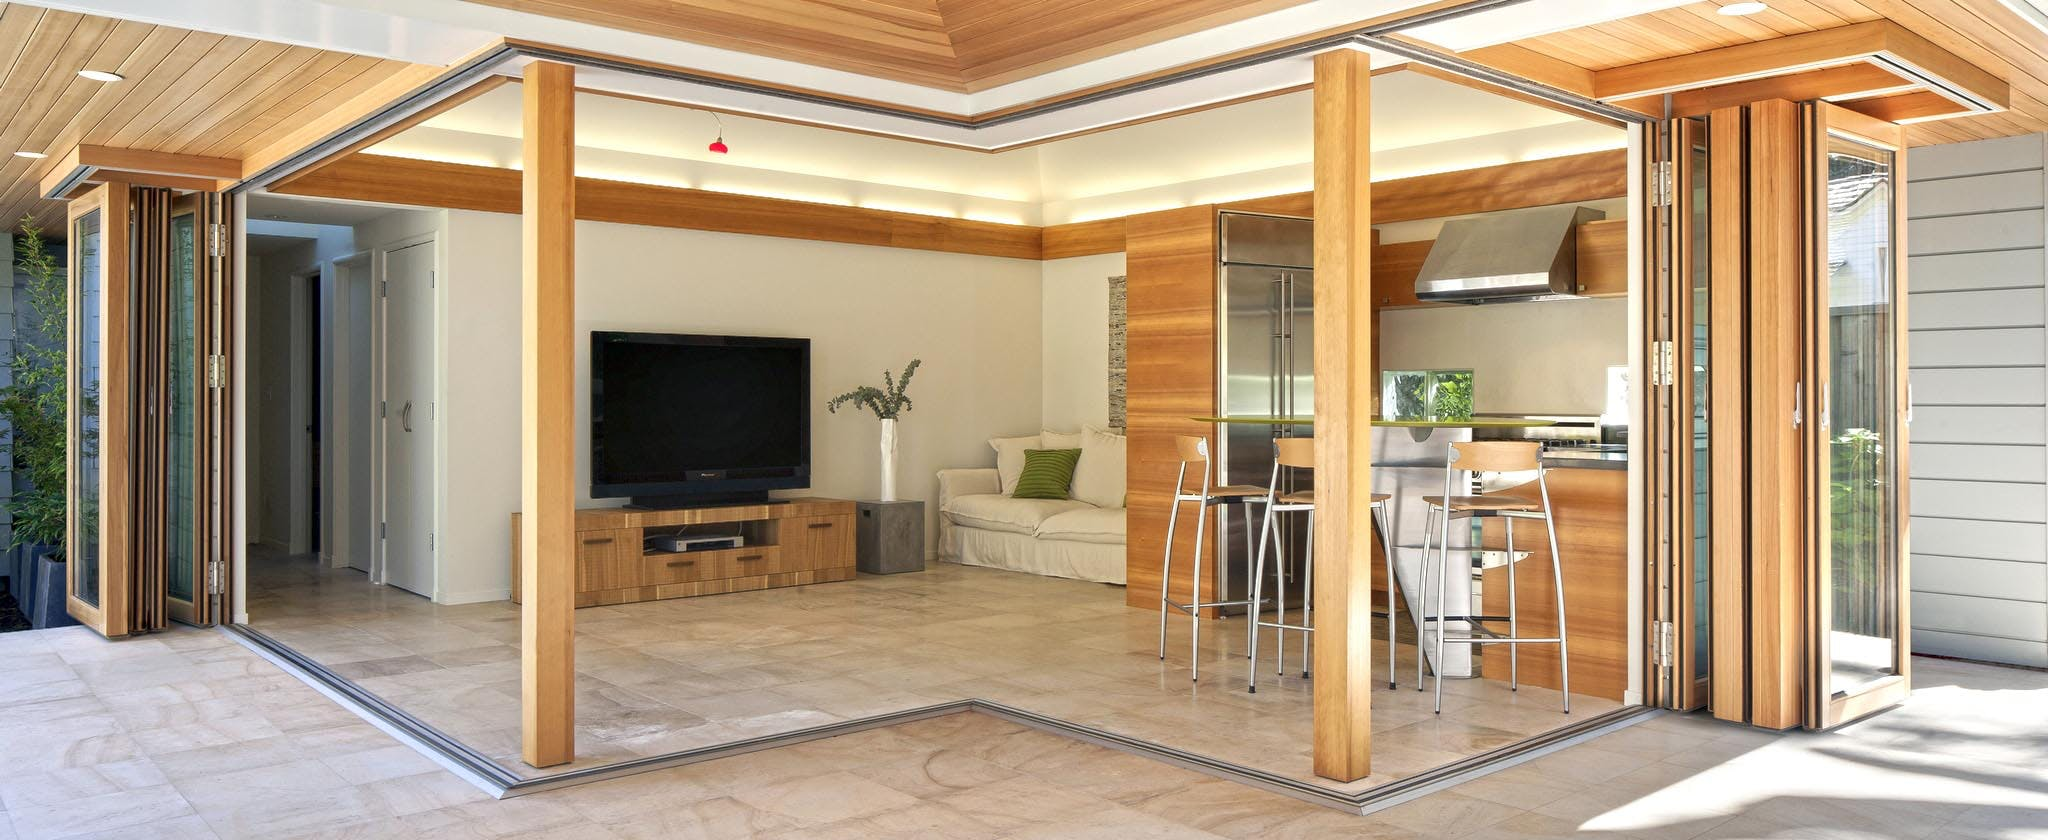 Wood Framed Sliding Glass Walls - Highlights